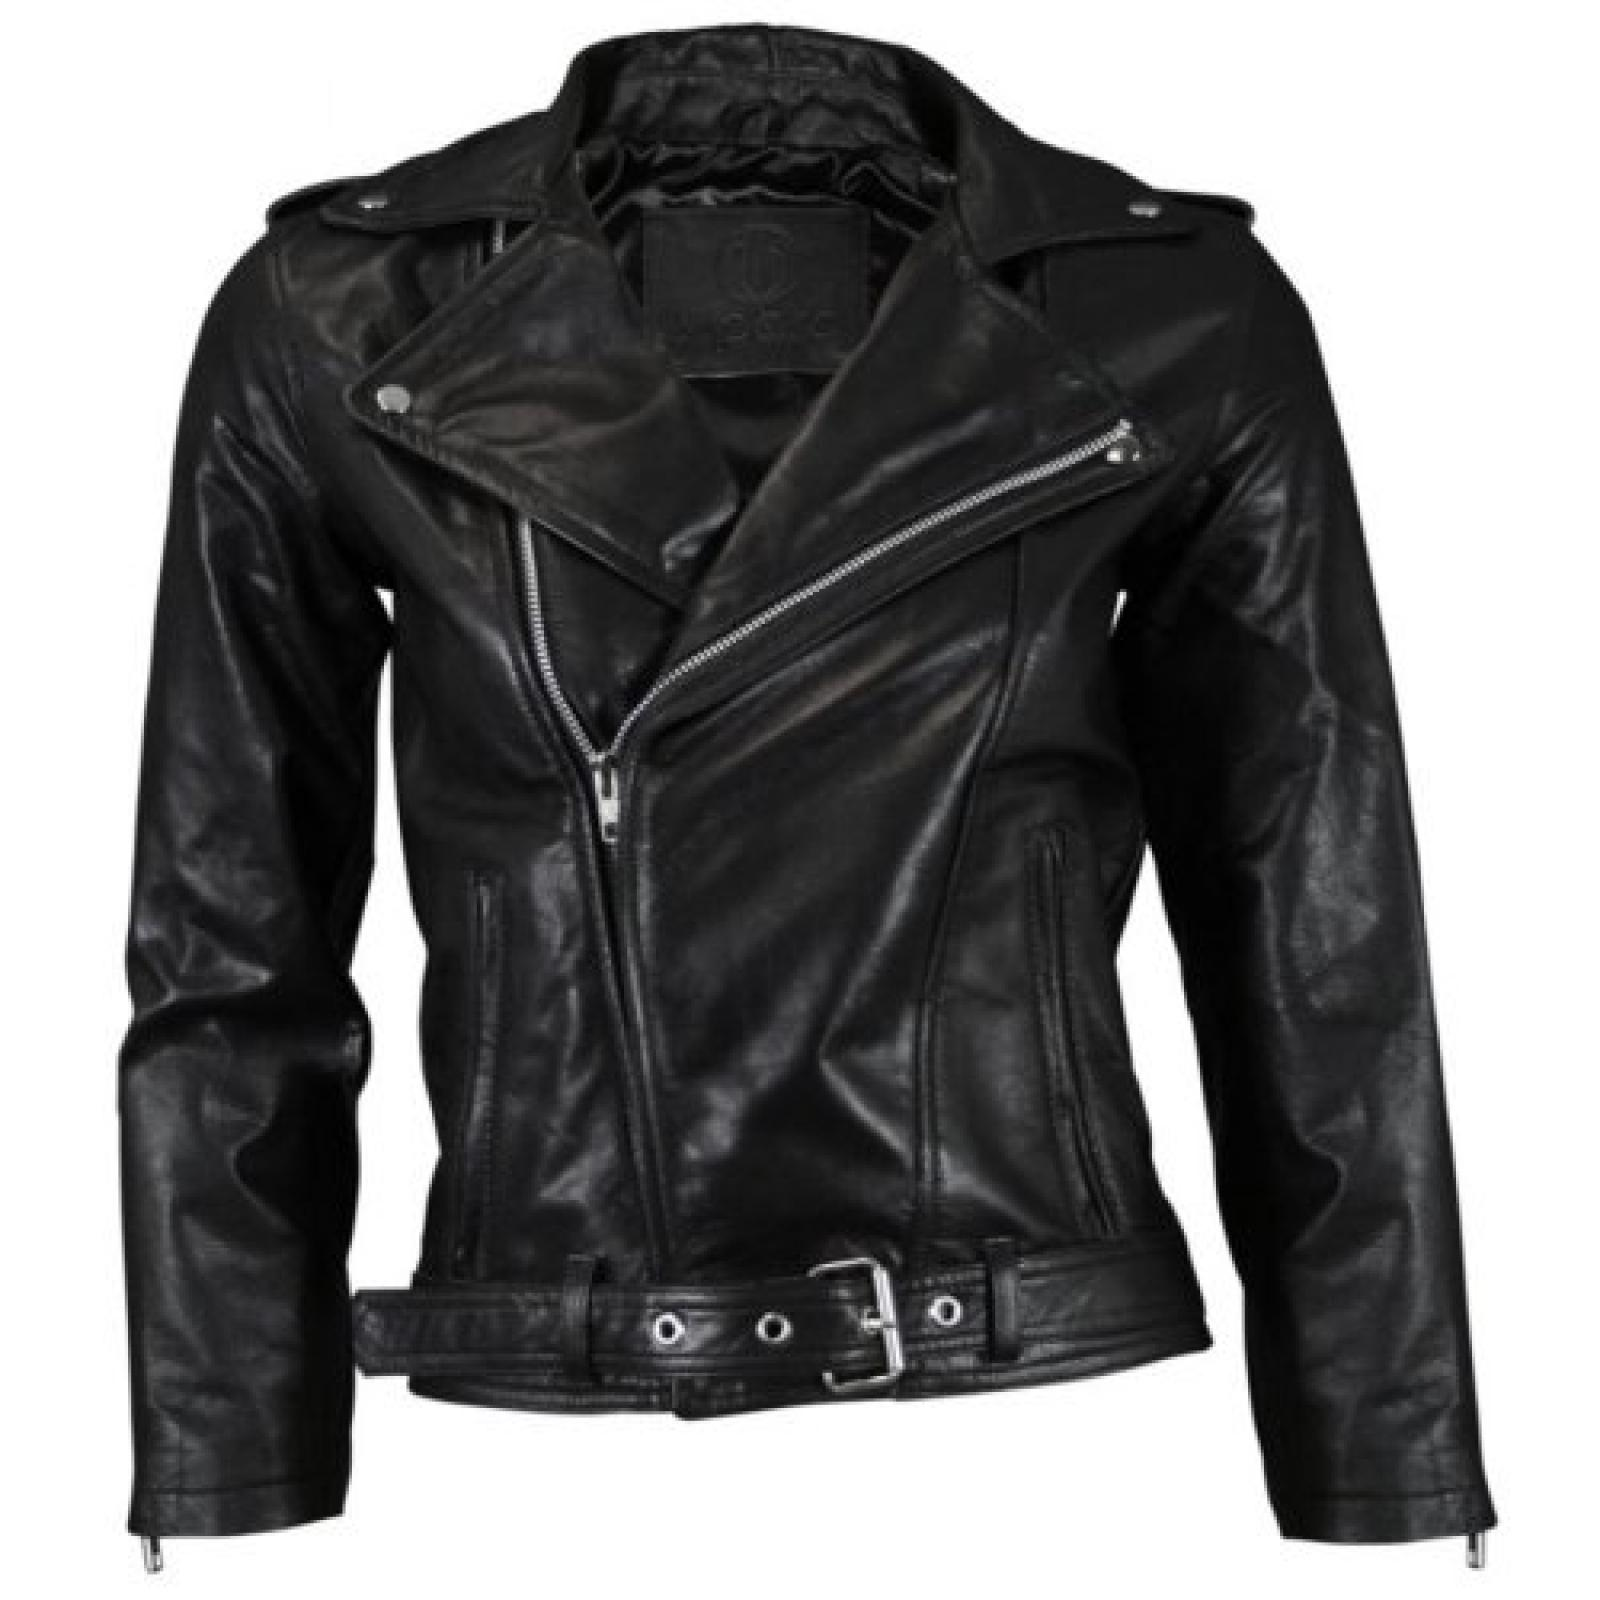 VIPARO Womens Black Cropped Sleeve Leather Biker Jacket - Kiera